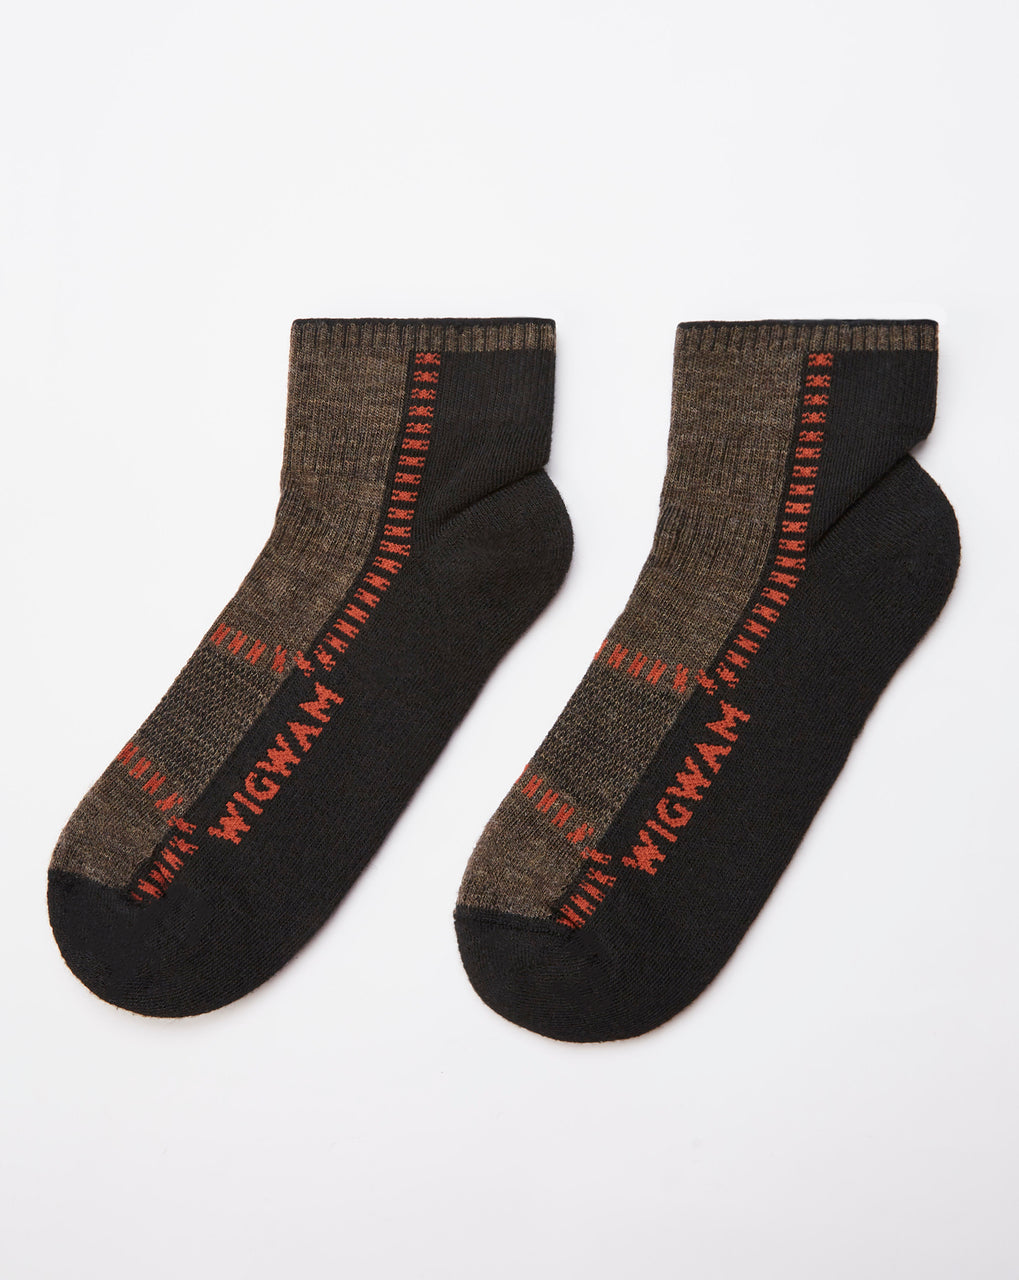 Wigwam Trail Trax Pro Socks (Taupe/Brown Heather)